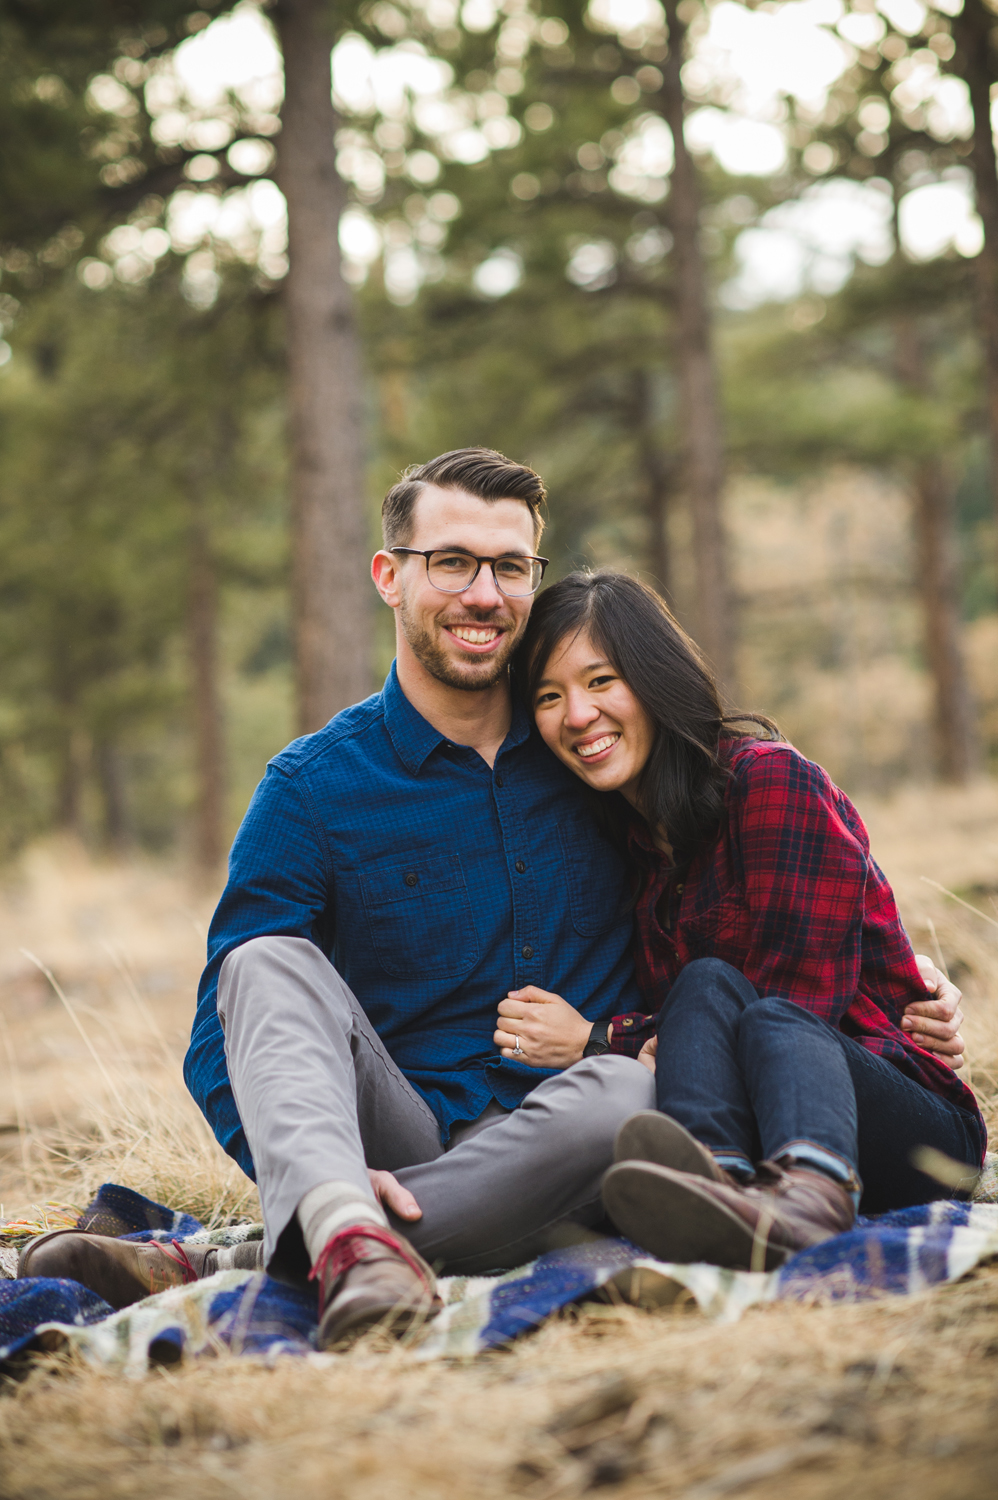 TiffanyandMark_Engaged_0783_squarespace.jpg